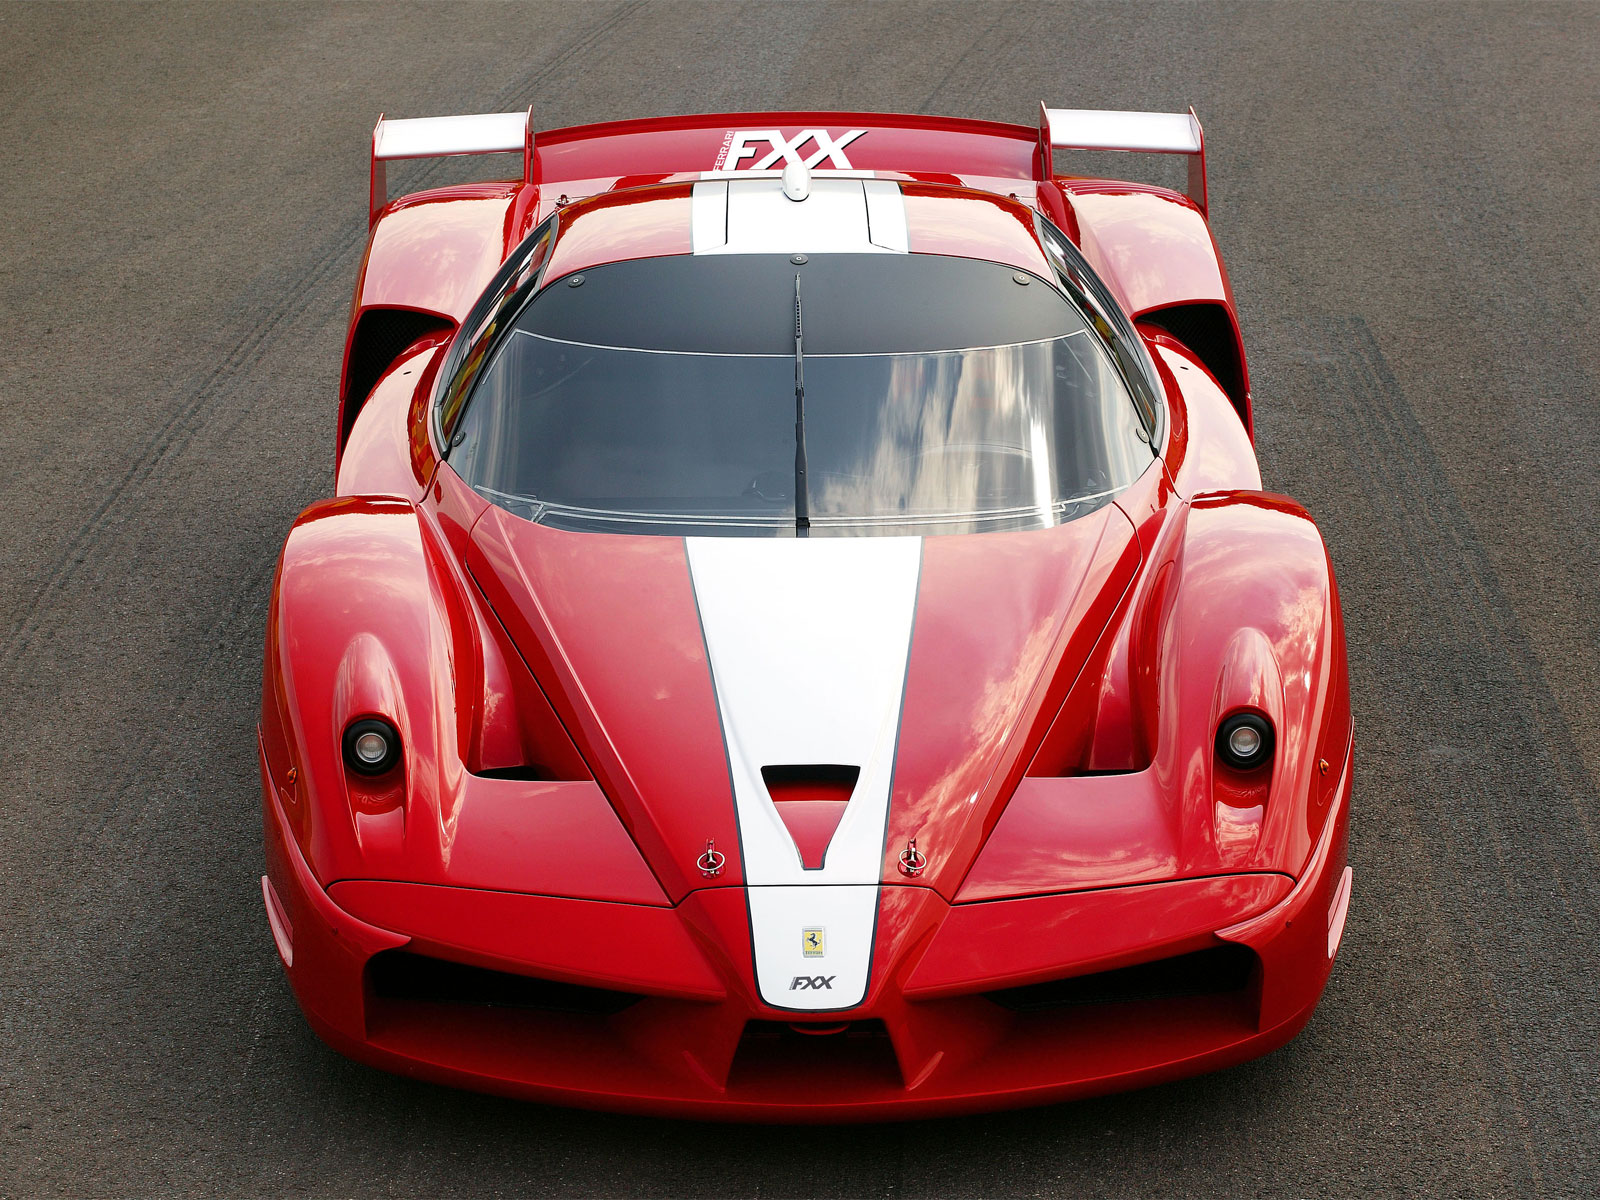 Topworldauto Photos Of Ferrari Fxx Photo Galleries